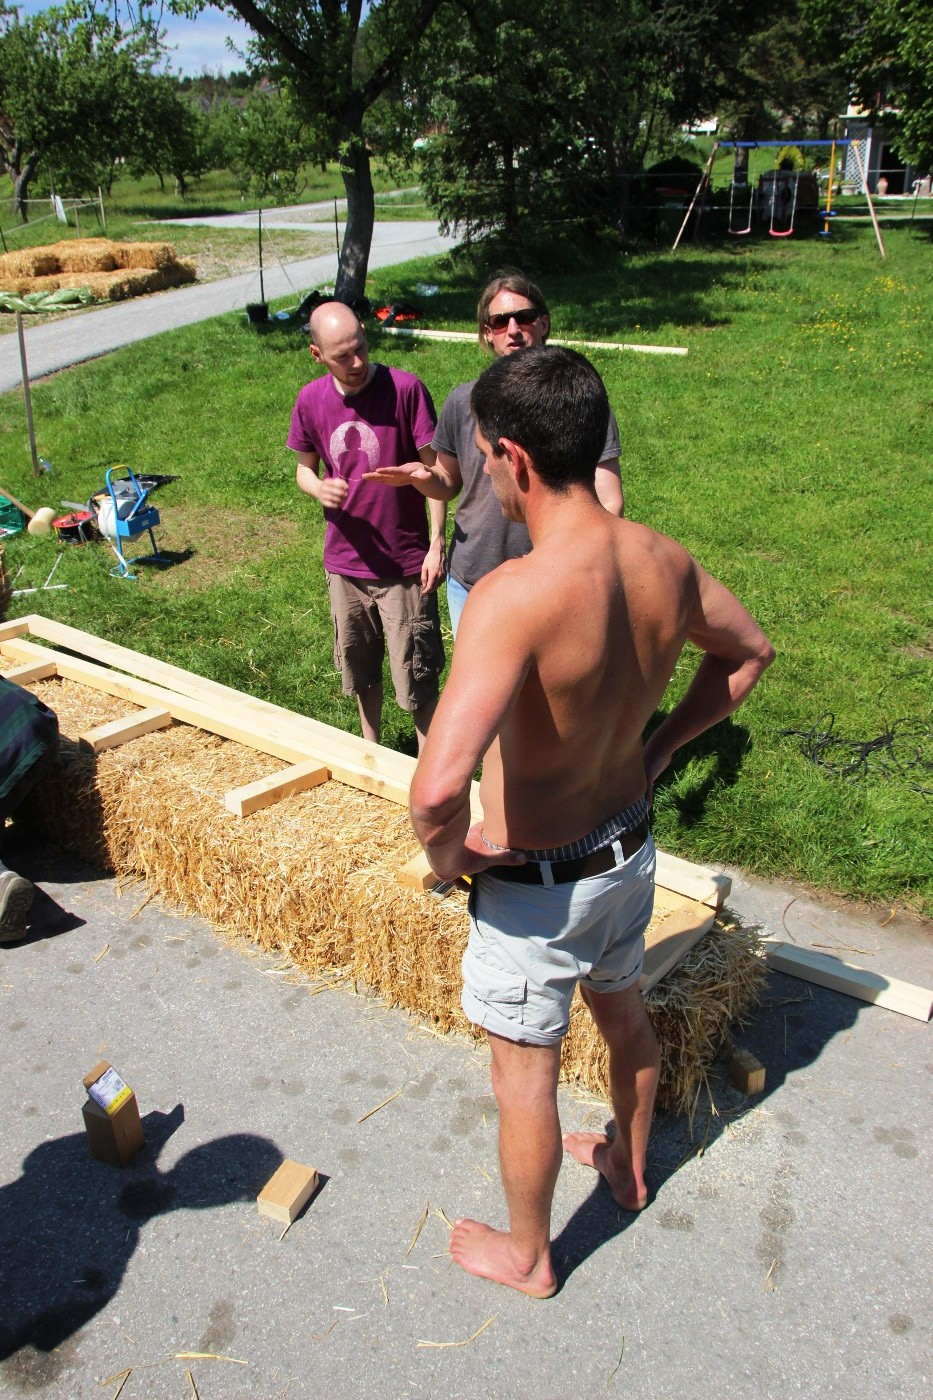 straw bale training for european professionals with